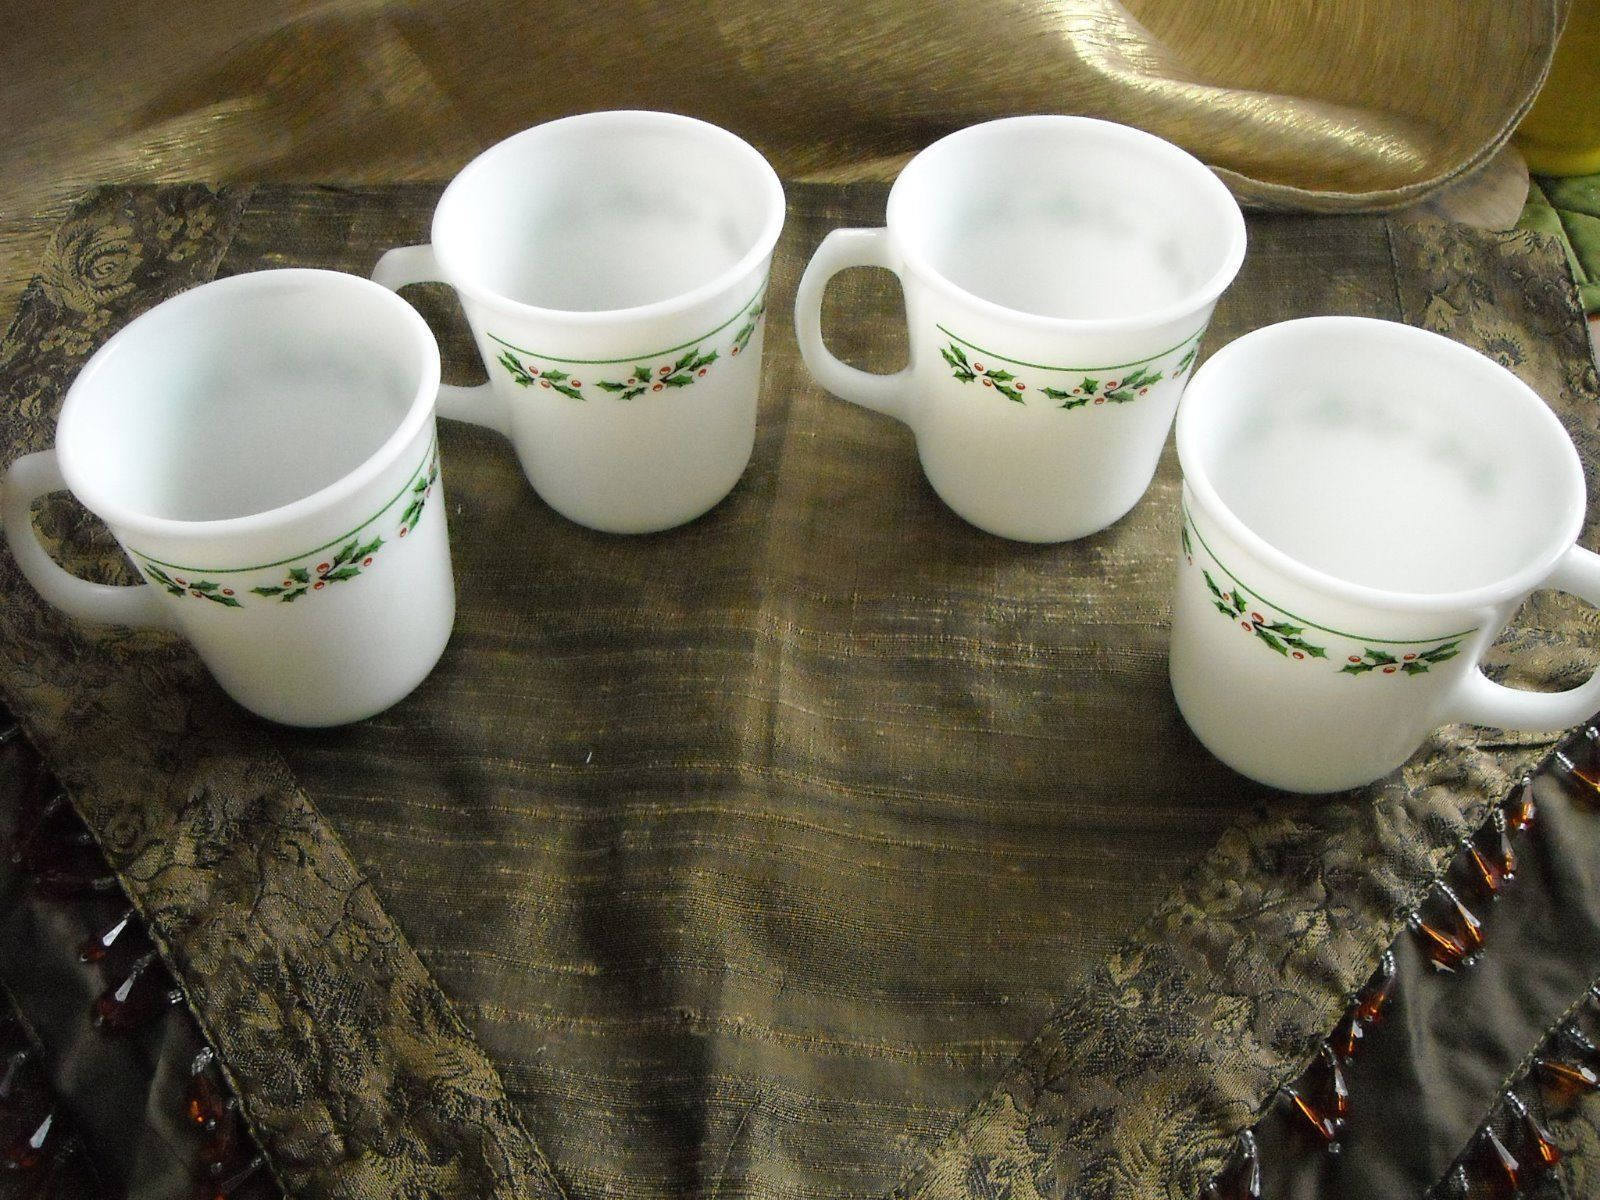 Vintage Corning Ware Coffee Cups Mugs Holly & Berry Trim Set of 4 Milk Glass image 5